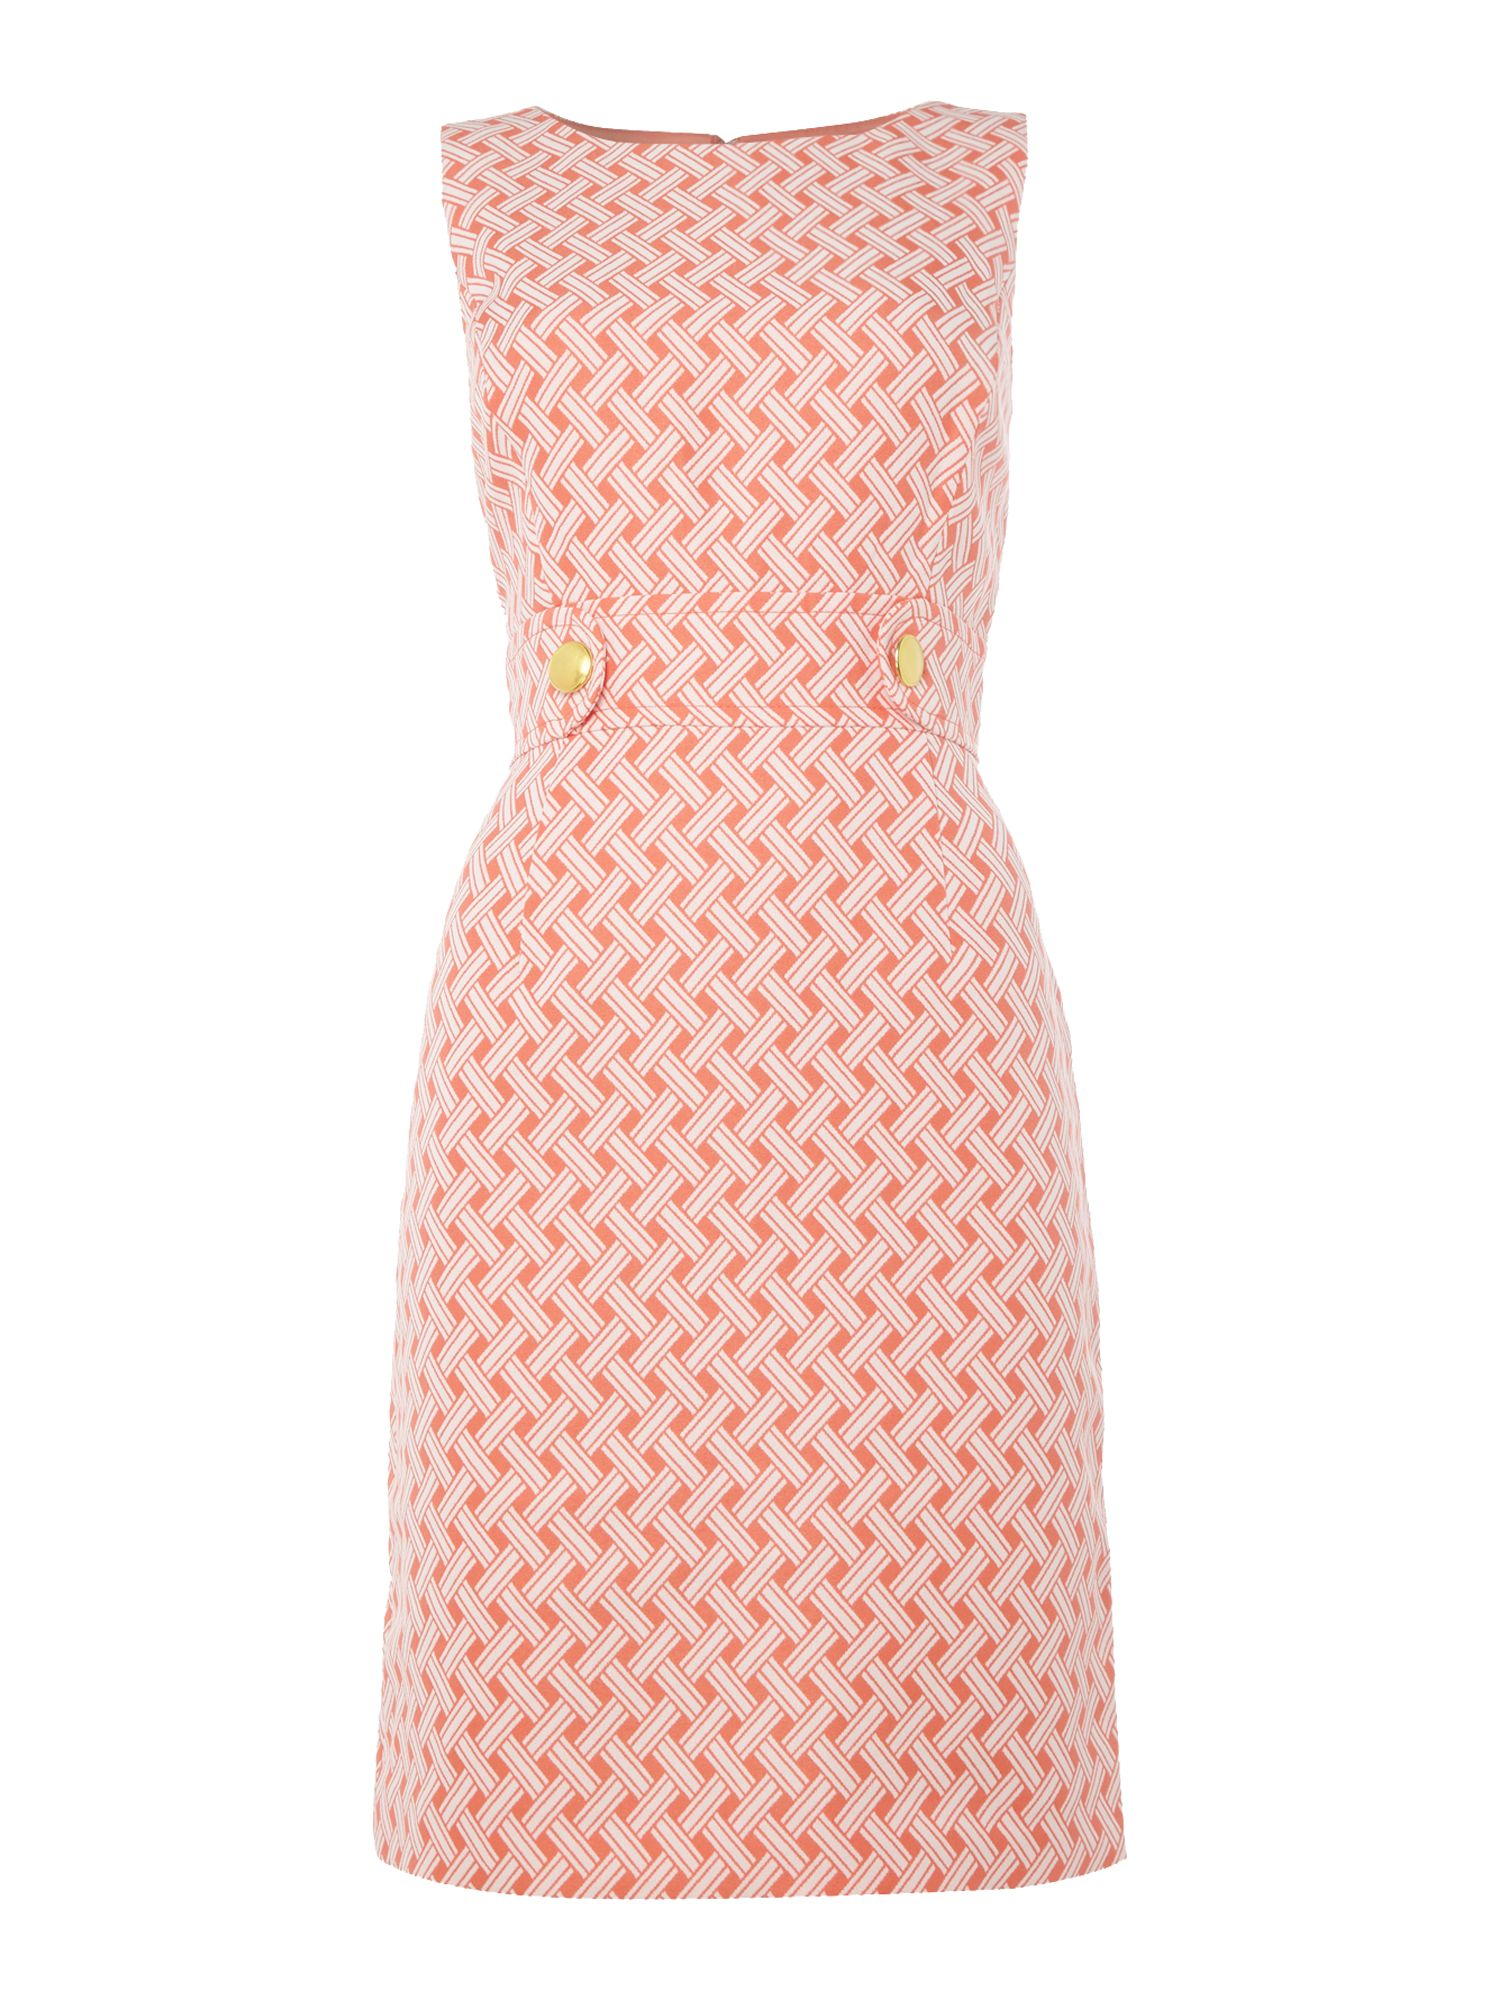 Tahari ASL Jacquard Print Shift Dress, Multi-Coloured